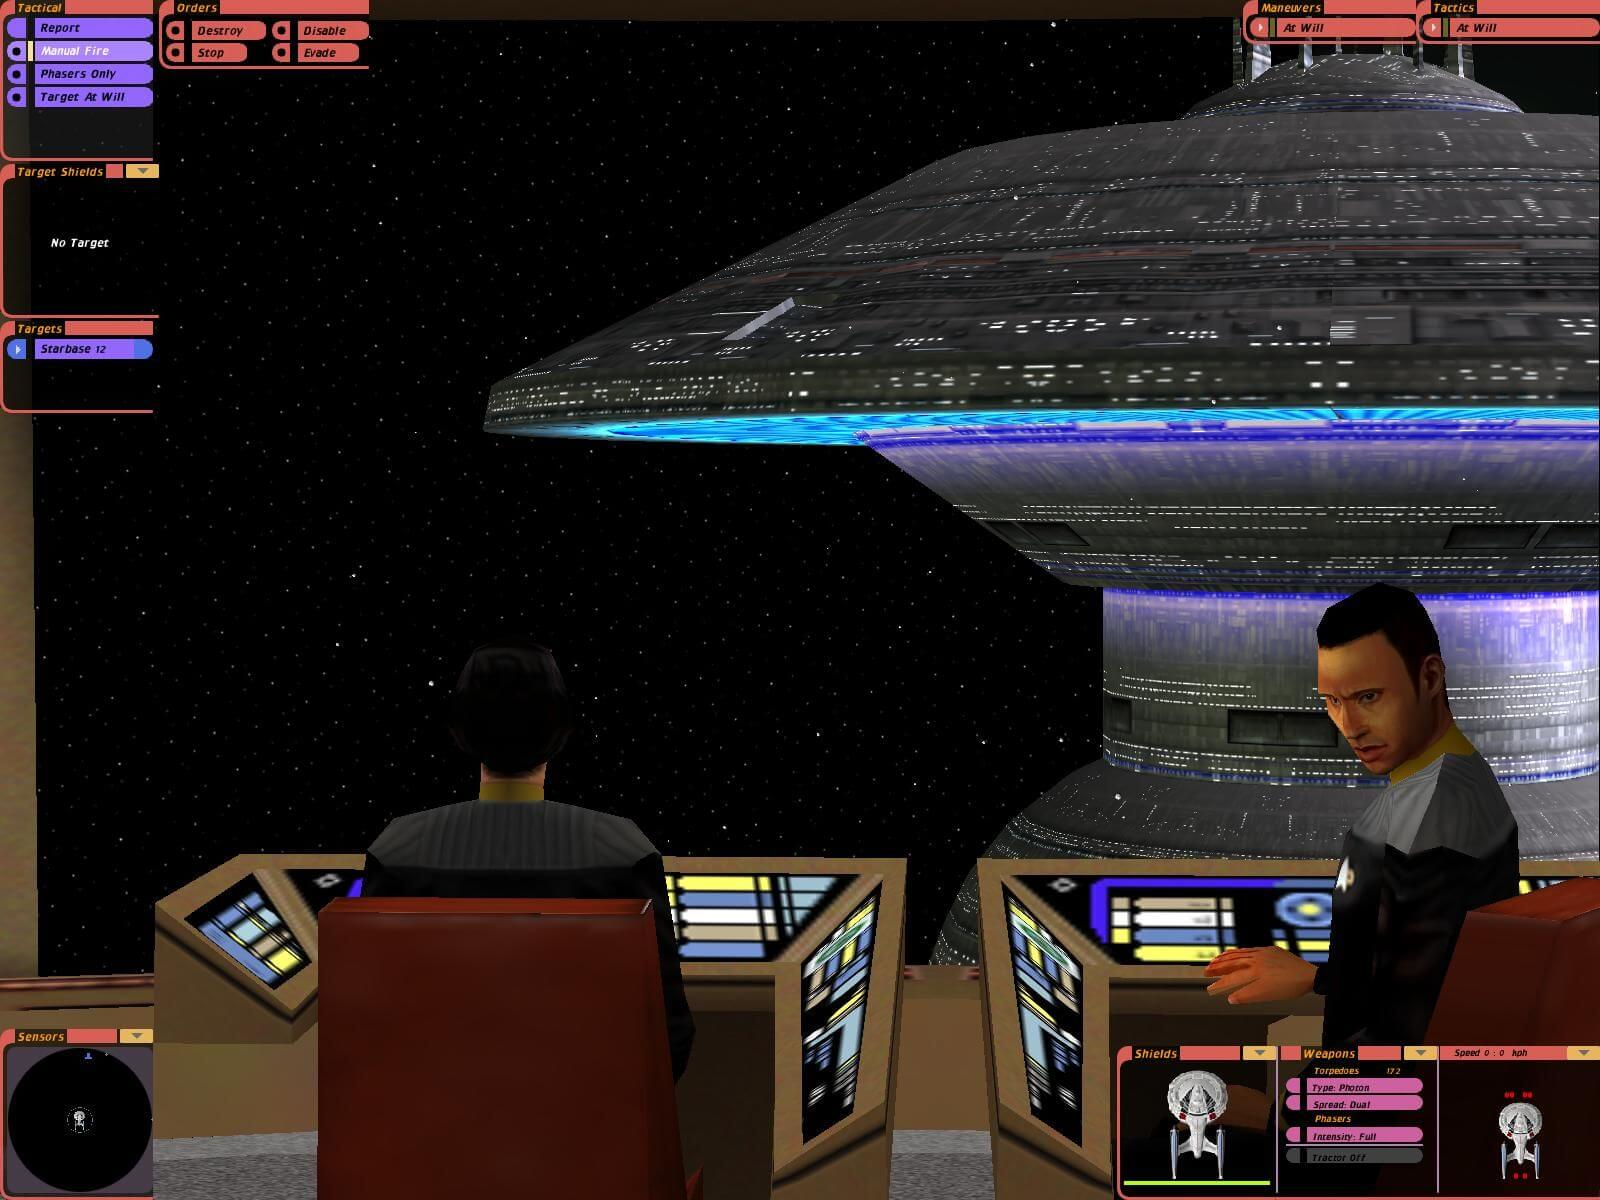 Download Star Trek Bridge Commander Full Game 45